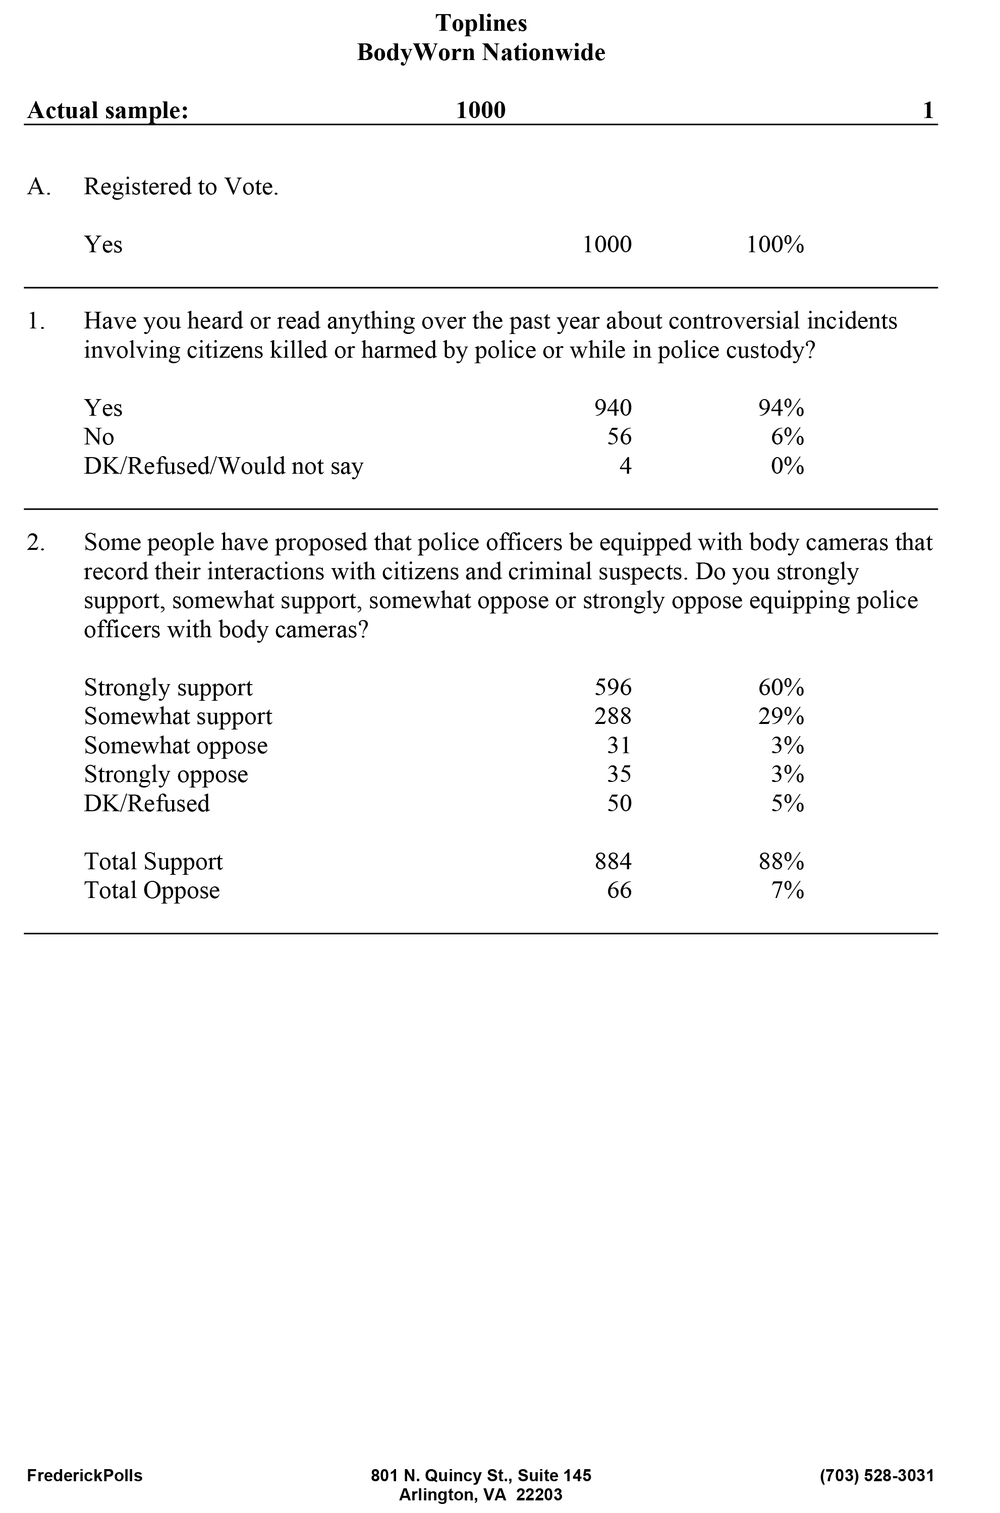 Bodyworn Poll Nationwide TOPLINES-1.jpg